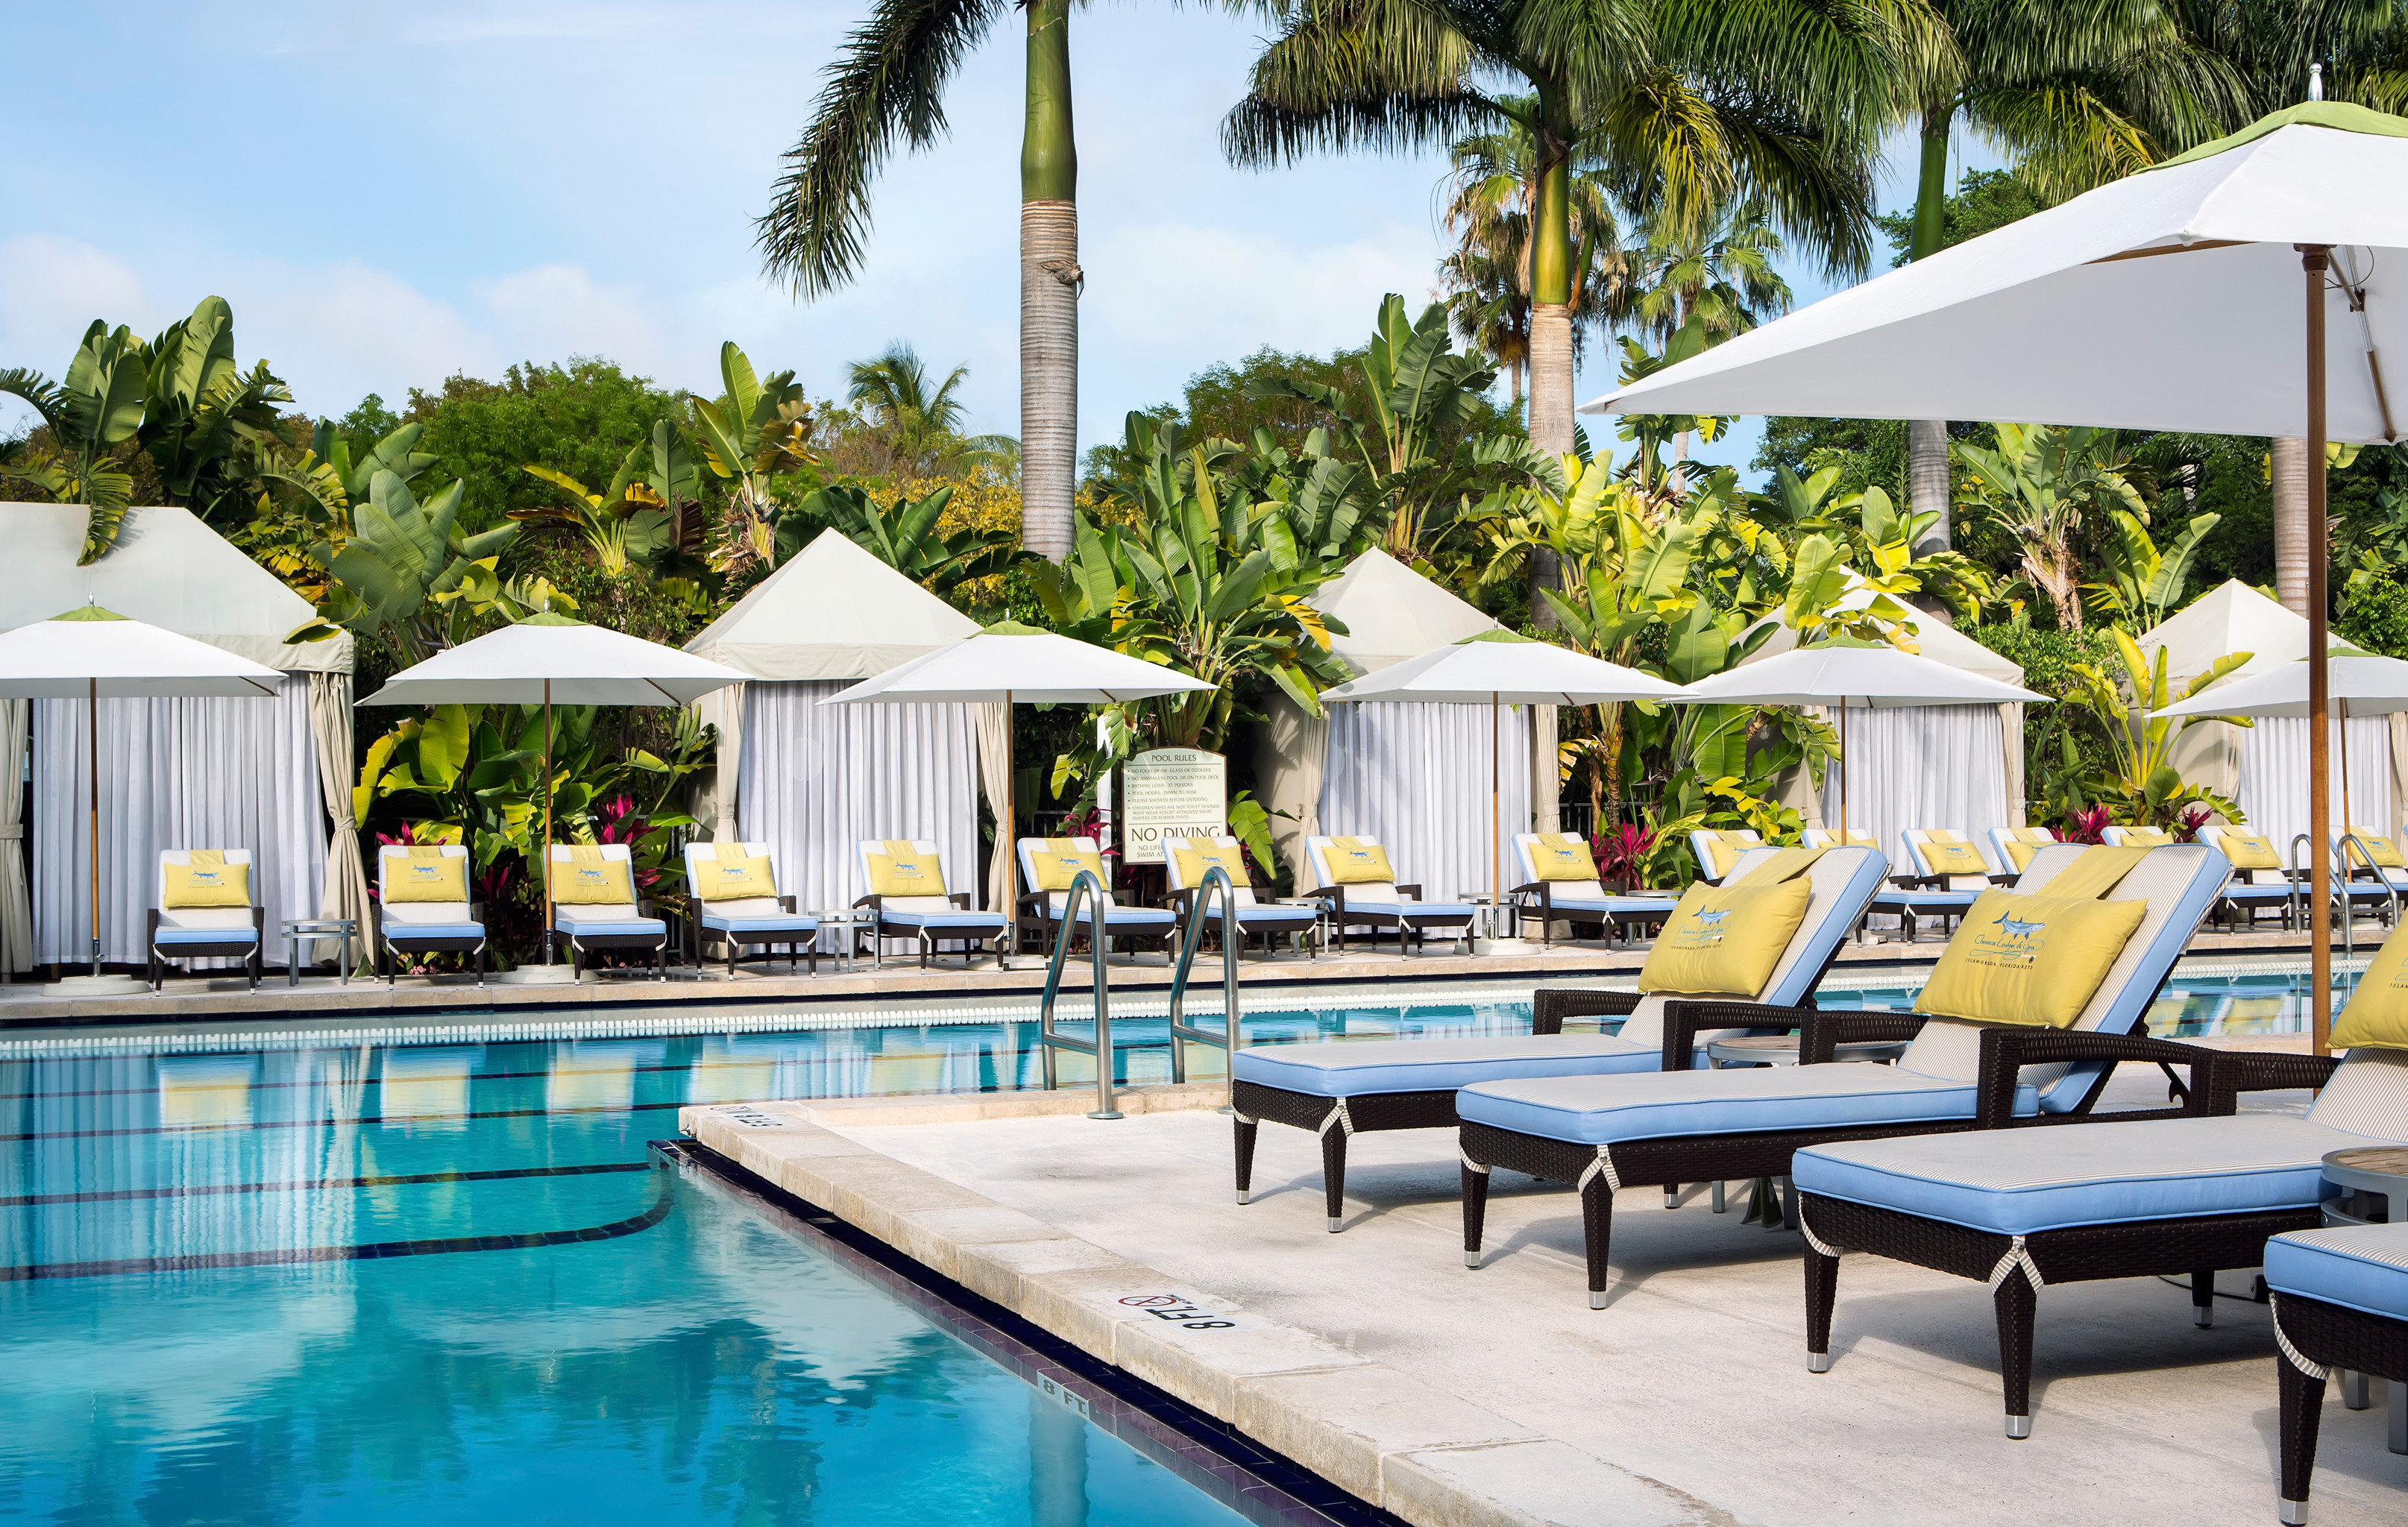 Hotels Island Lodge Lounge Patio Pool Trip Ideas Tropical Tree Outdoor Table Leisure Chair Swimming